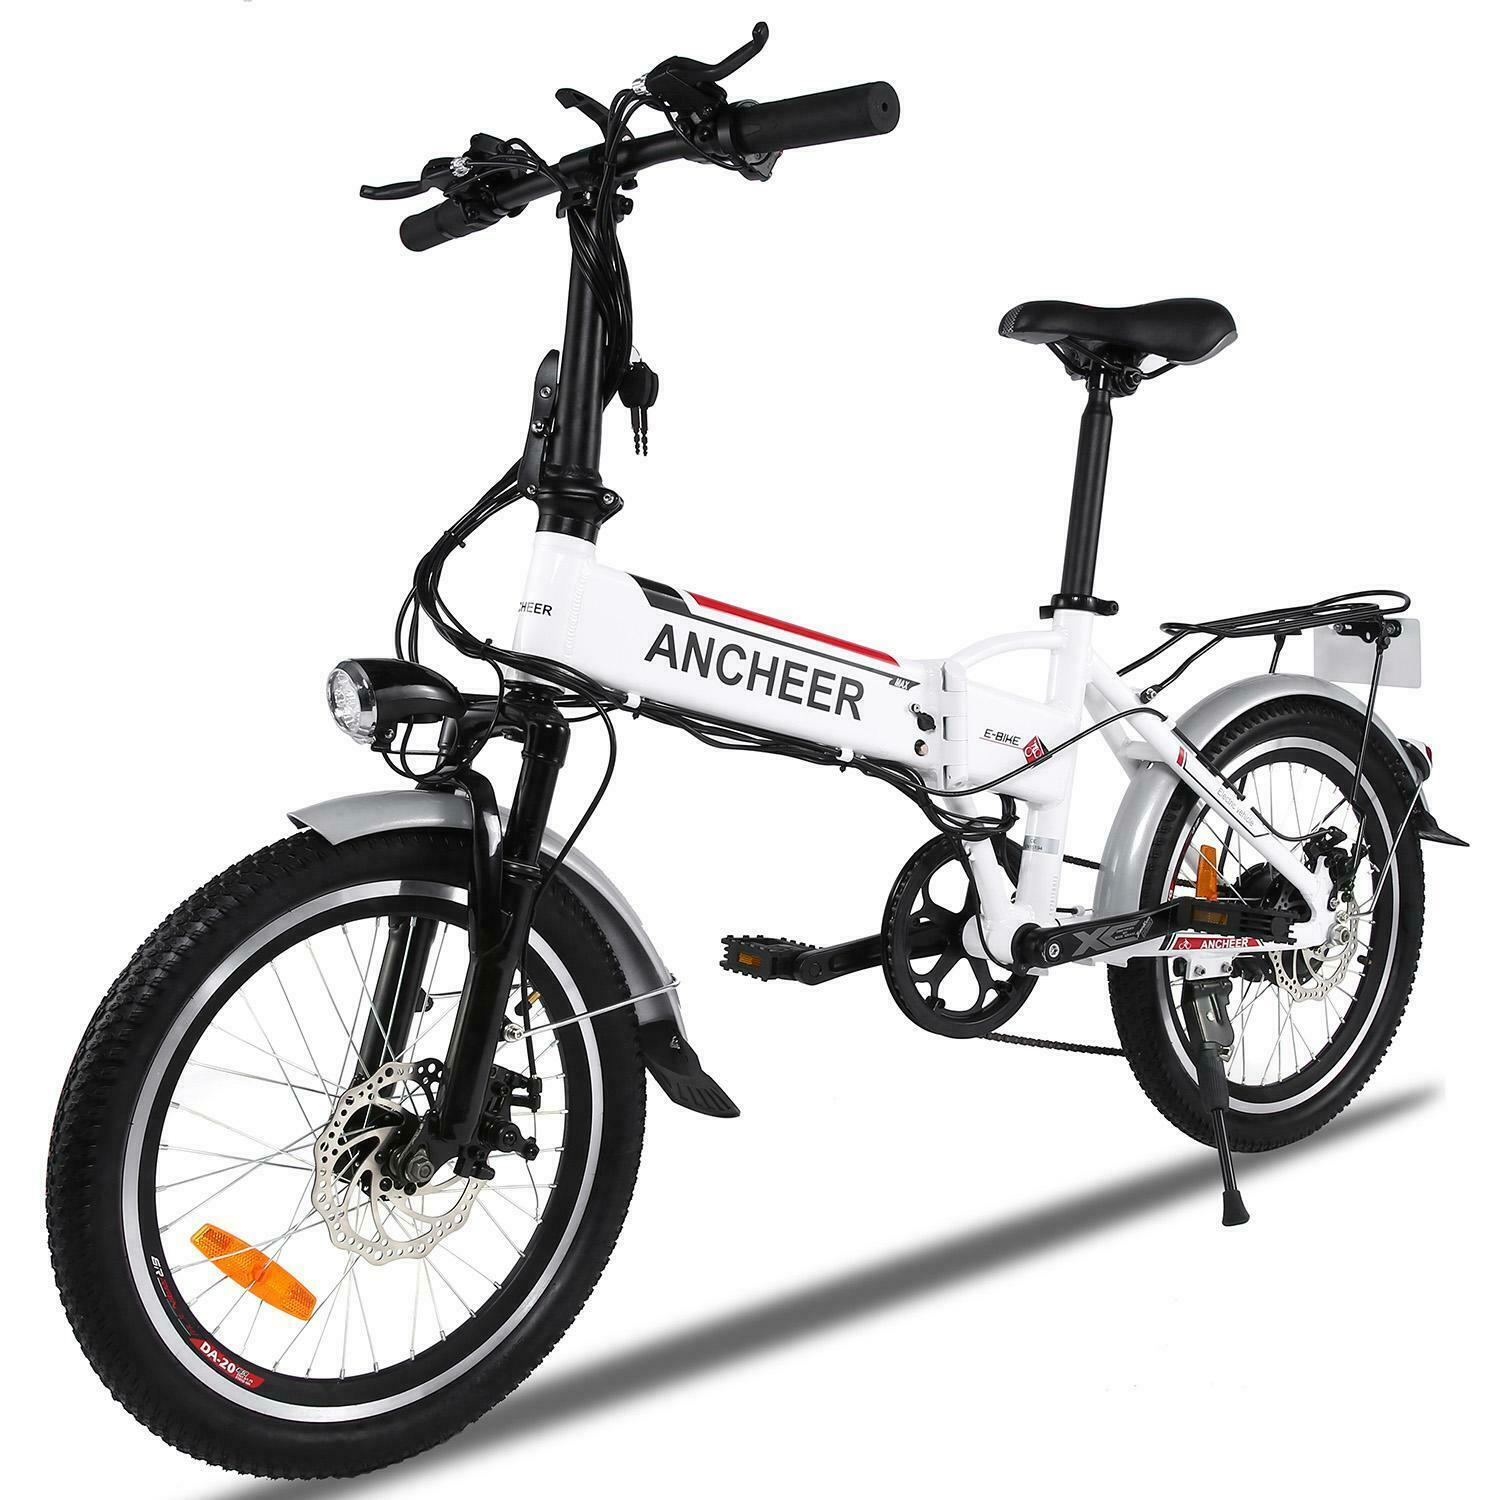 20  ANCHEER Aluminum Alloy Foldable Electric Mountain Bicycle 250W Power E-bike